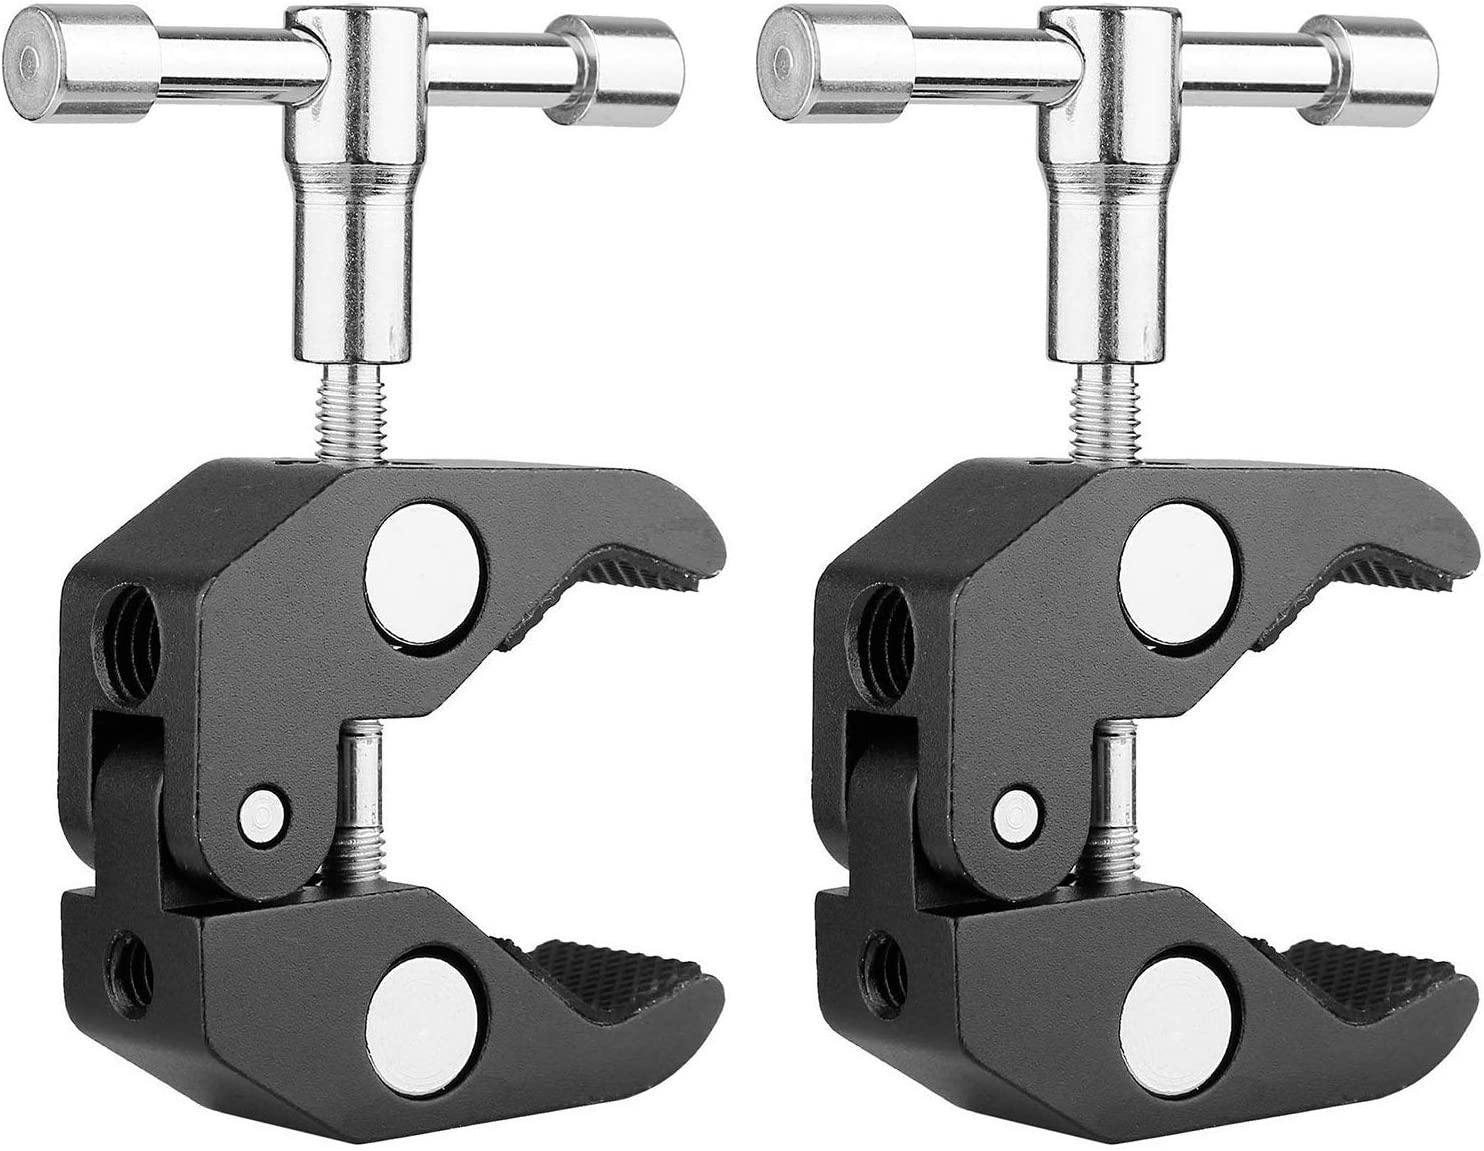 Cross Bars,Photo Accessories and Mo Hooks Shelves Plate Glass Kaliou 2Pack Super Camera Clamp Mount Max Open 2.16//6 cm Crab Clamp for Cameras Umbrellas Lights